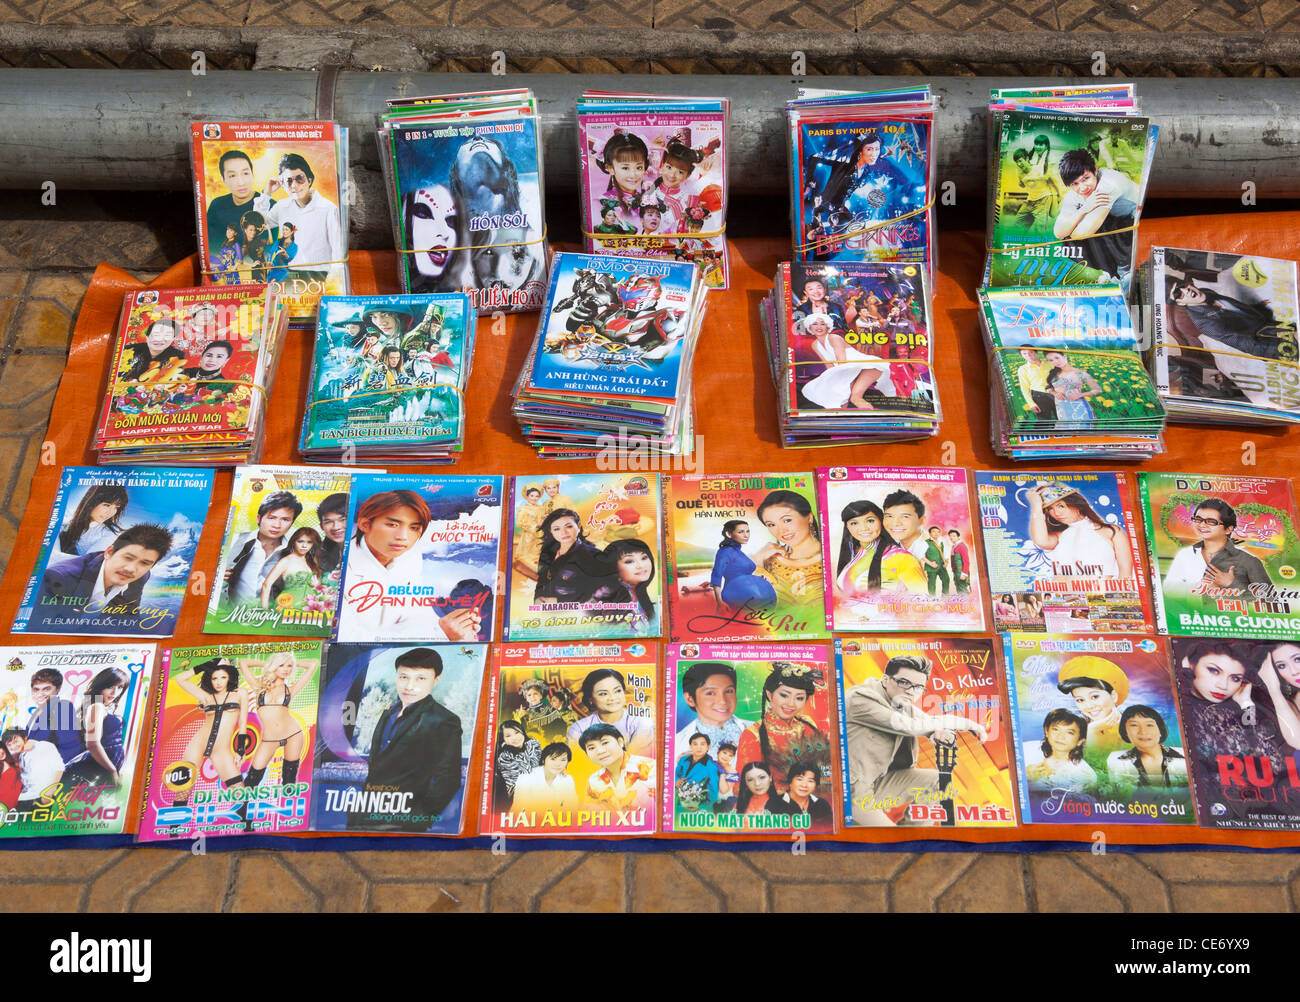 Dvds For Sale Stock Photos & Dvds For Sale Stock Images - Alamy